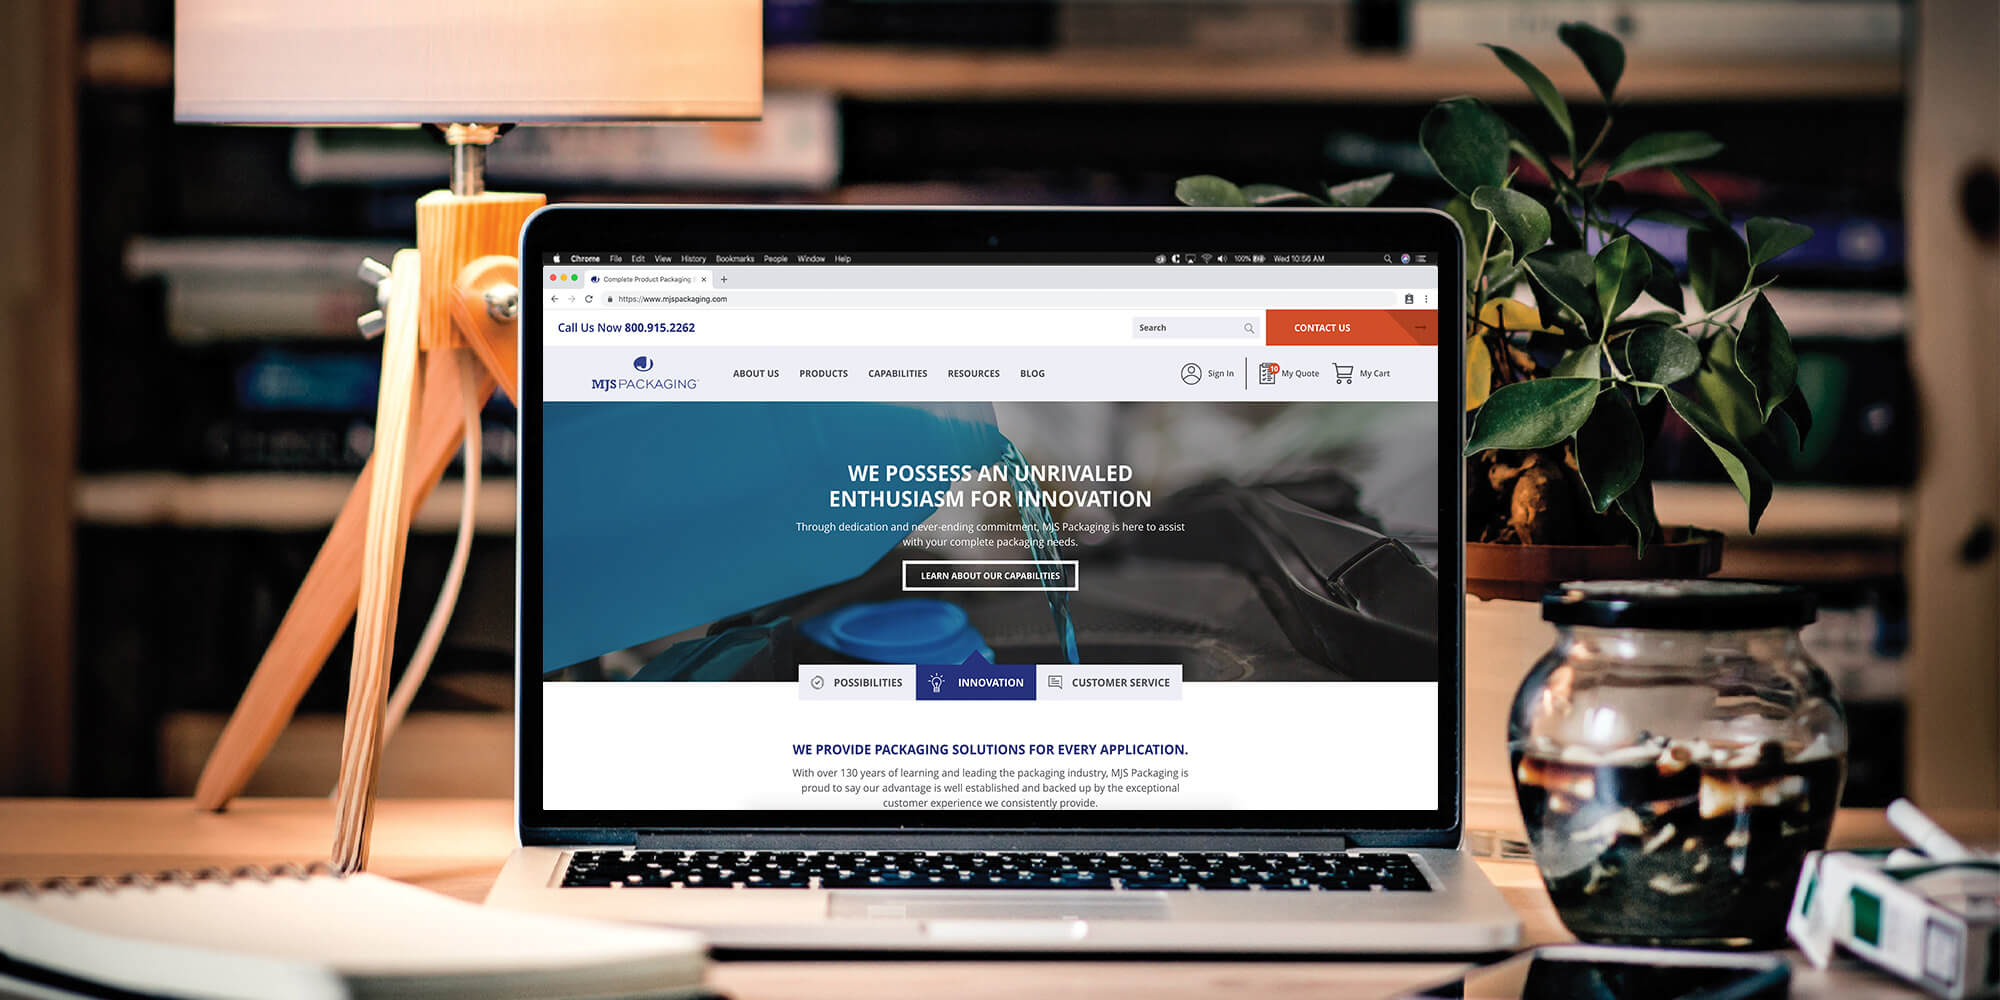 MJS Packaging Announces New Ecommerce Website Featured Image